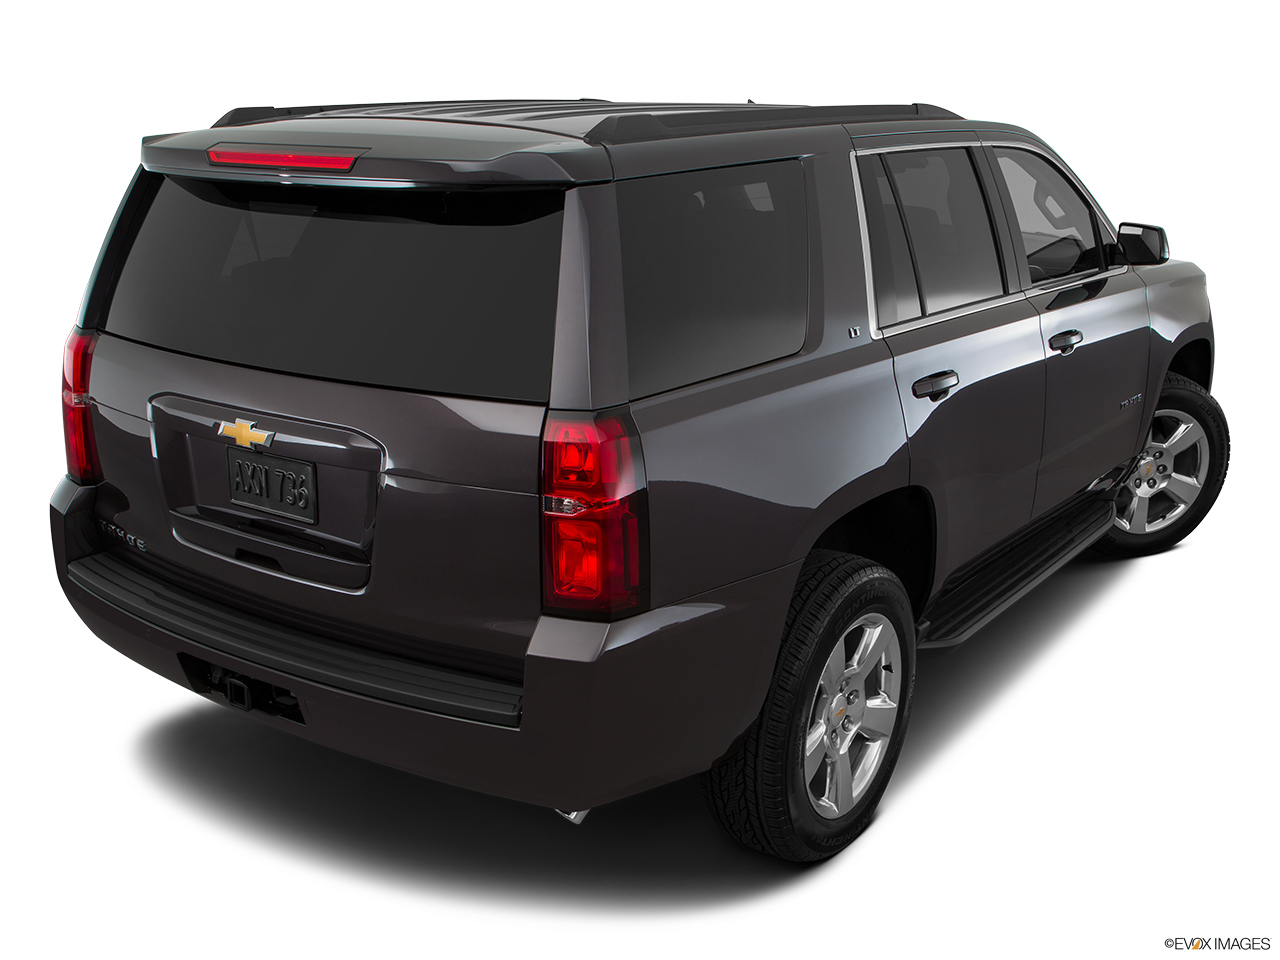 Chevrolet Tahoe 2016 LS in UAE: New Car Prices, Specs, Reviews & Photos | YallaMotor